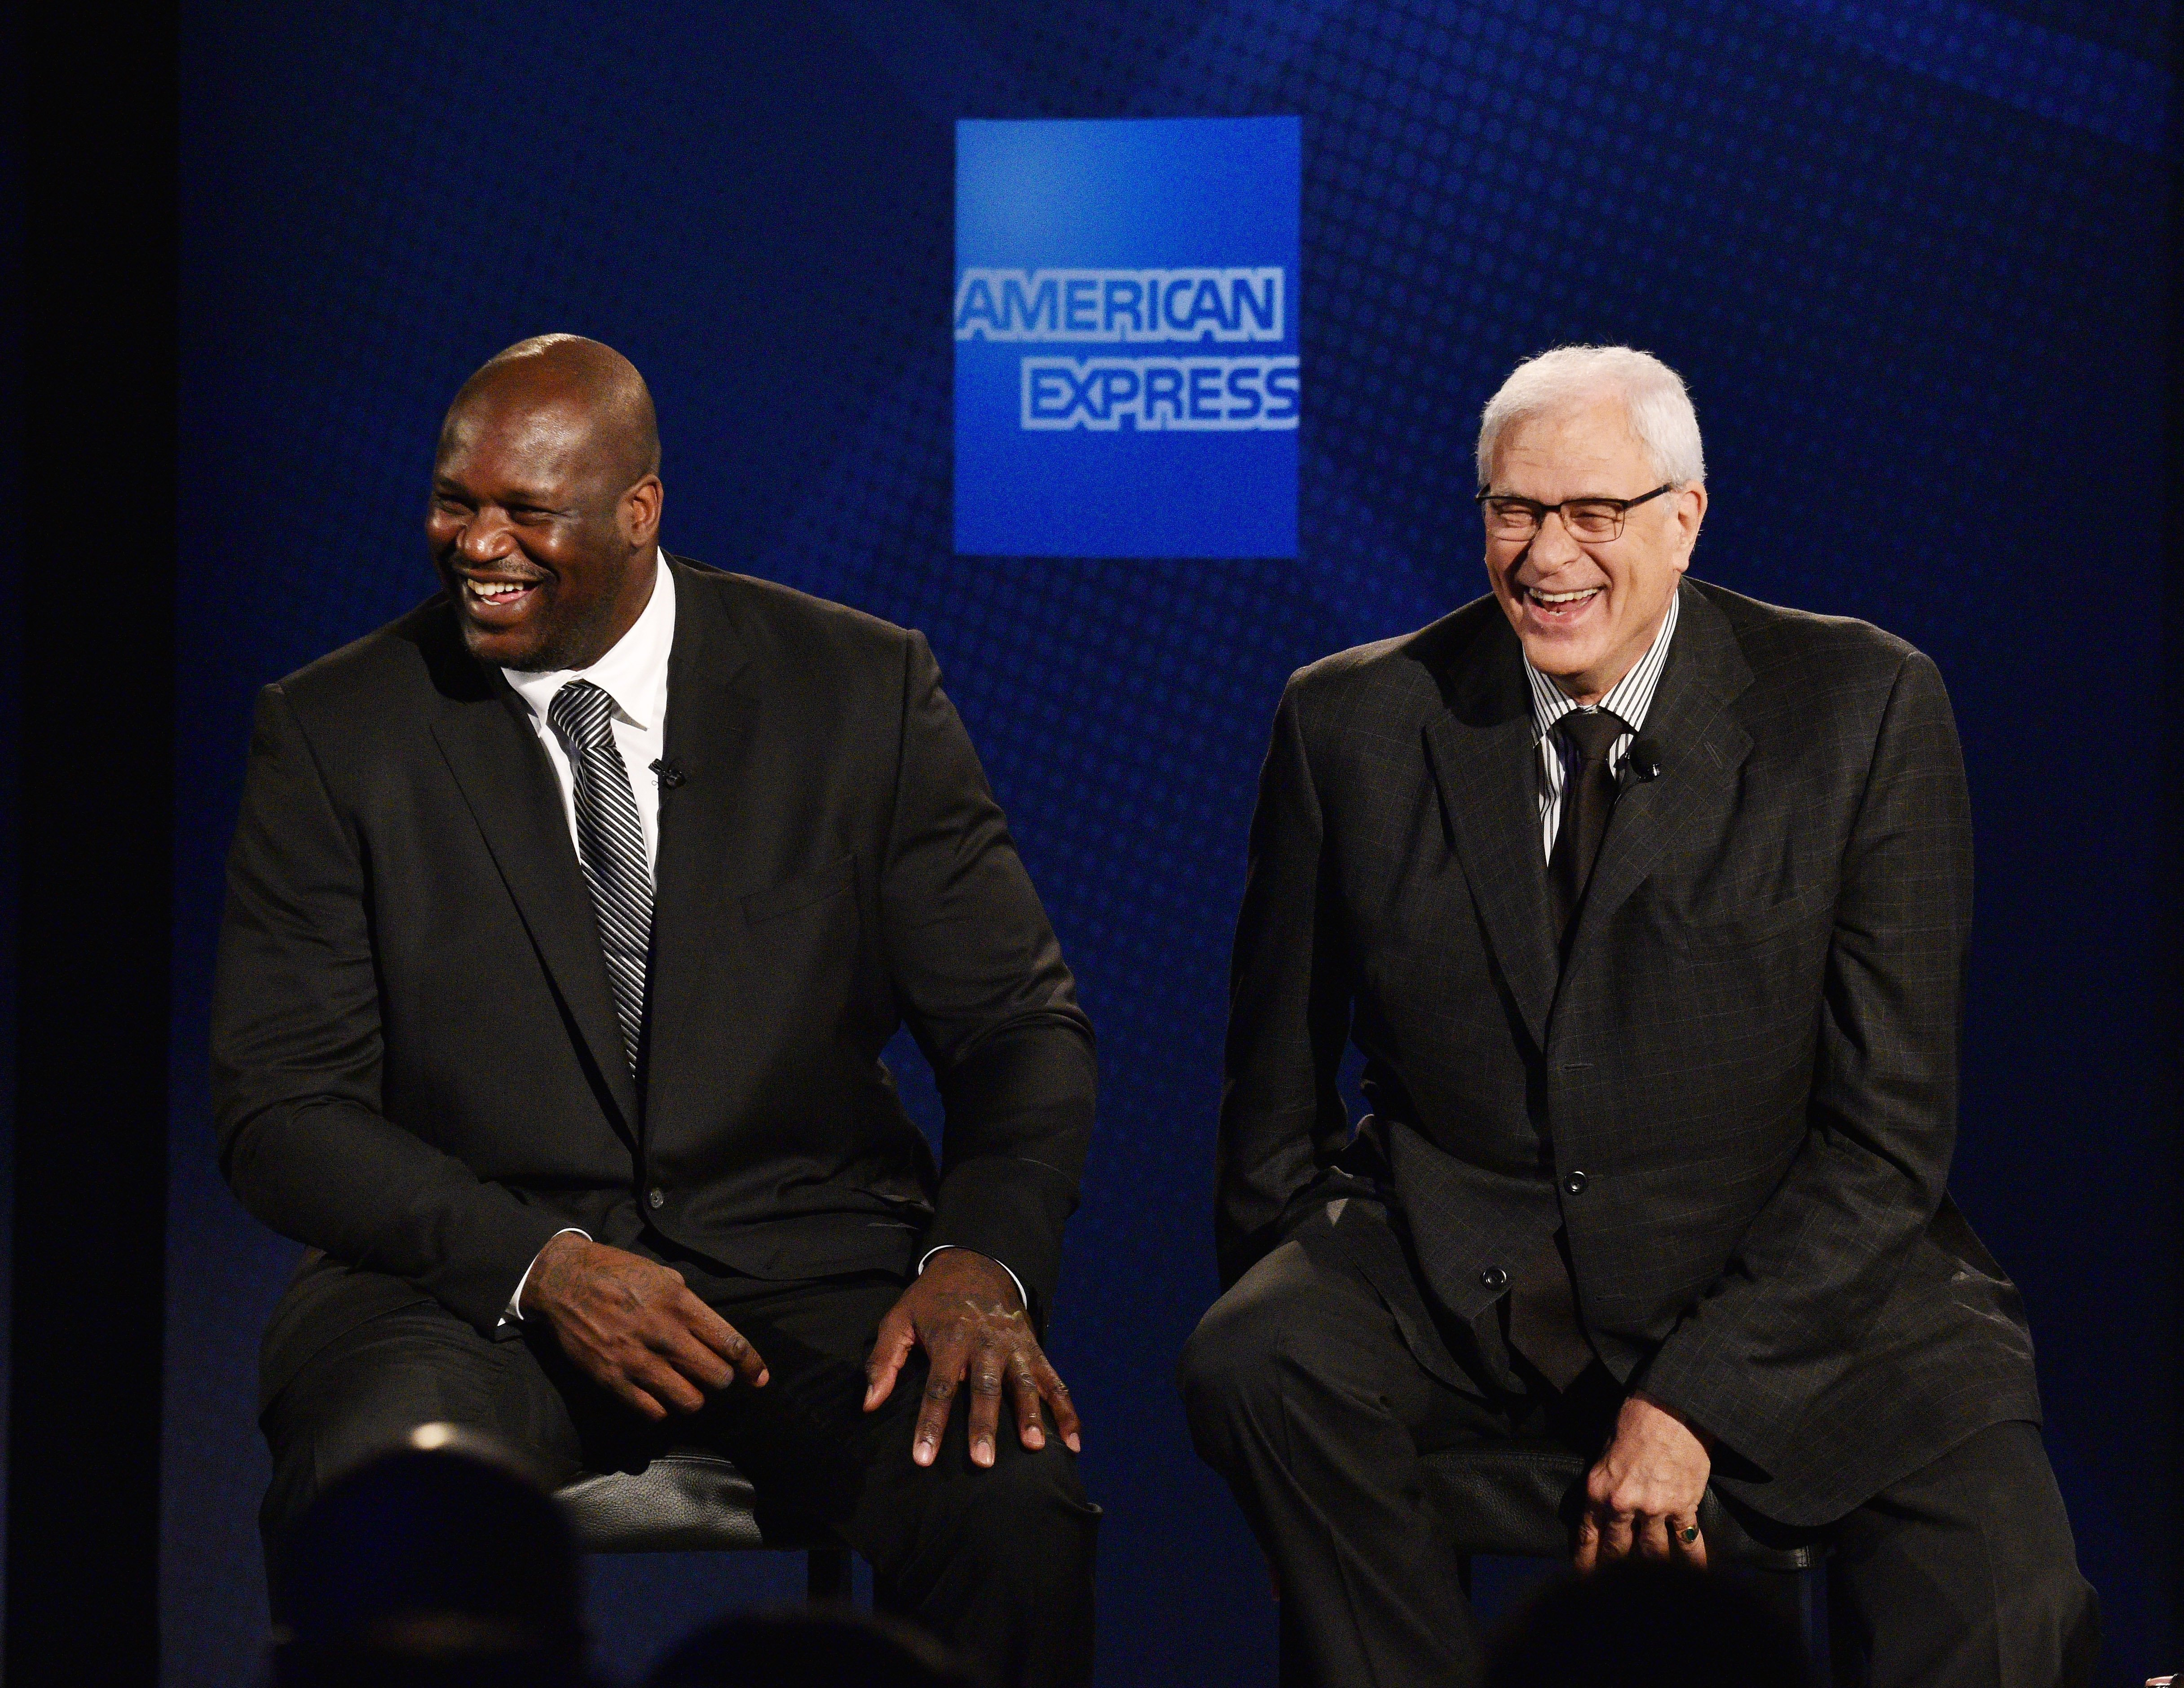 Shaquille O'Neal and Phil Jackson at the Altman Building on June 6, 2016 | Photo: Getty Images